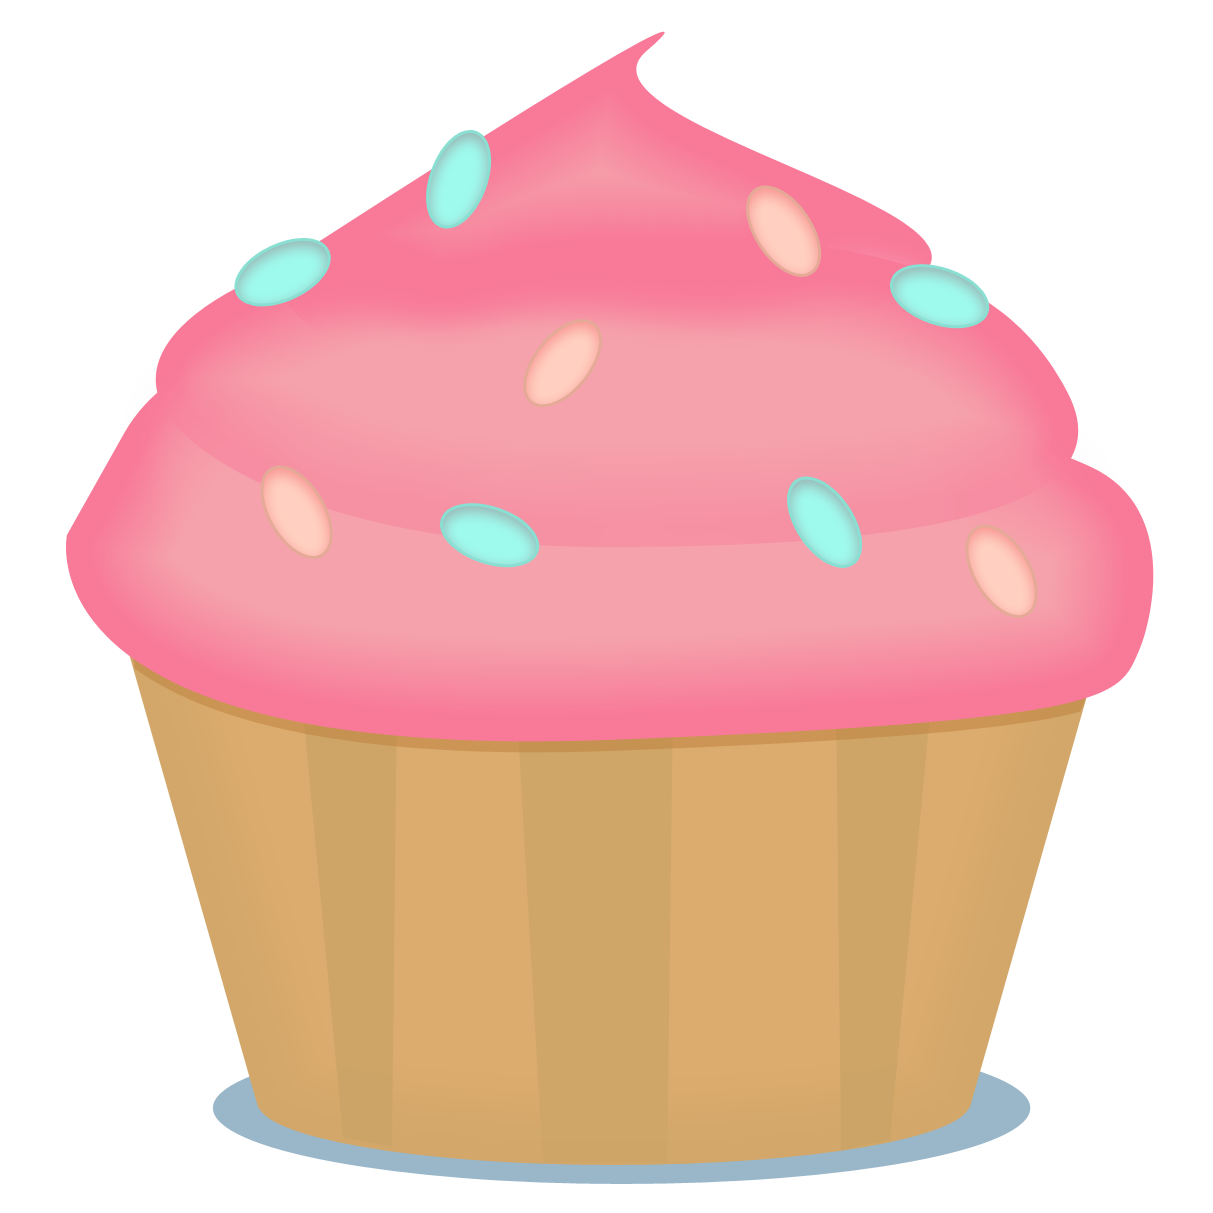 Baked Goods Clipart - clipartall ...